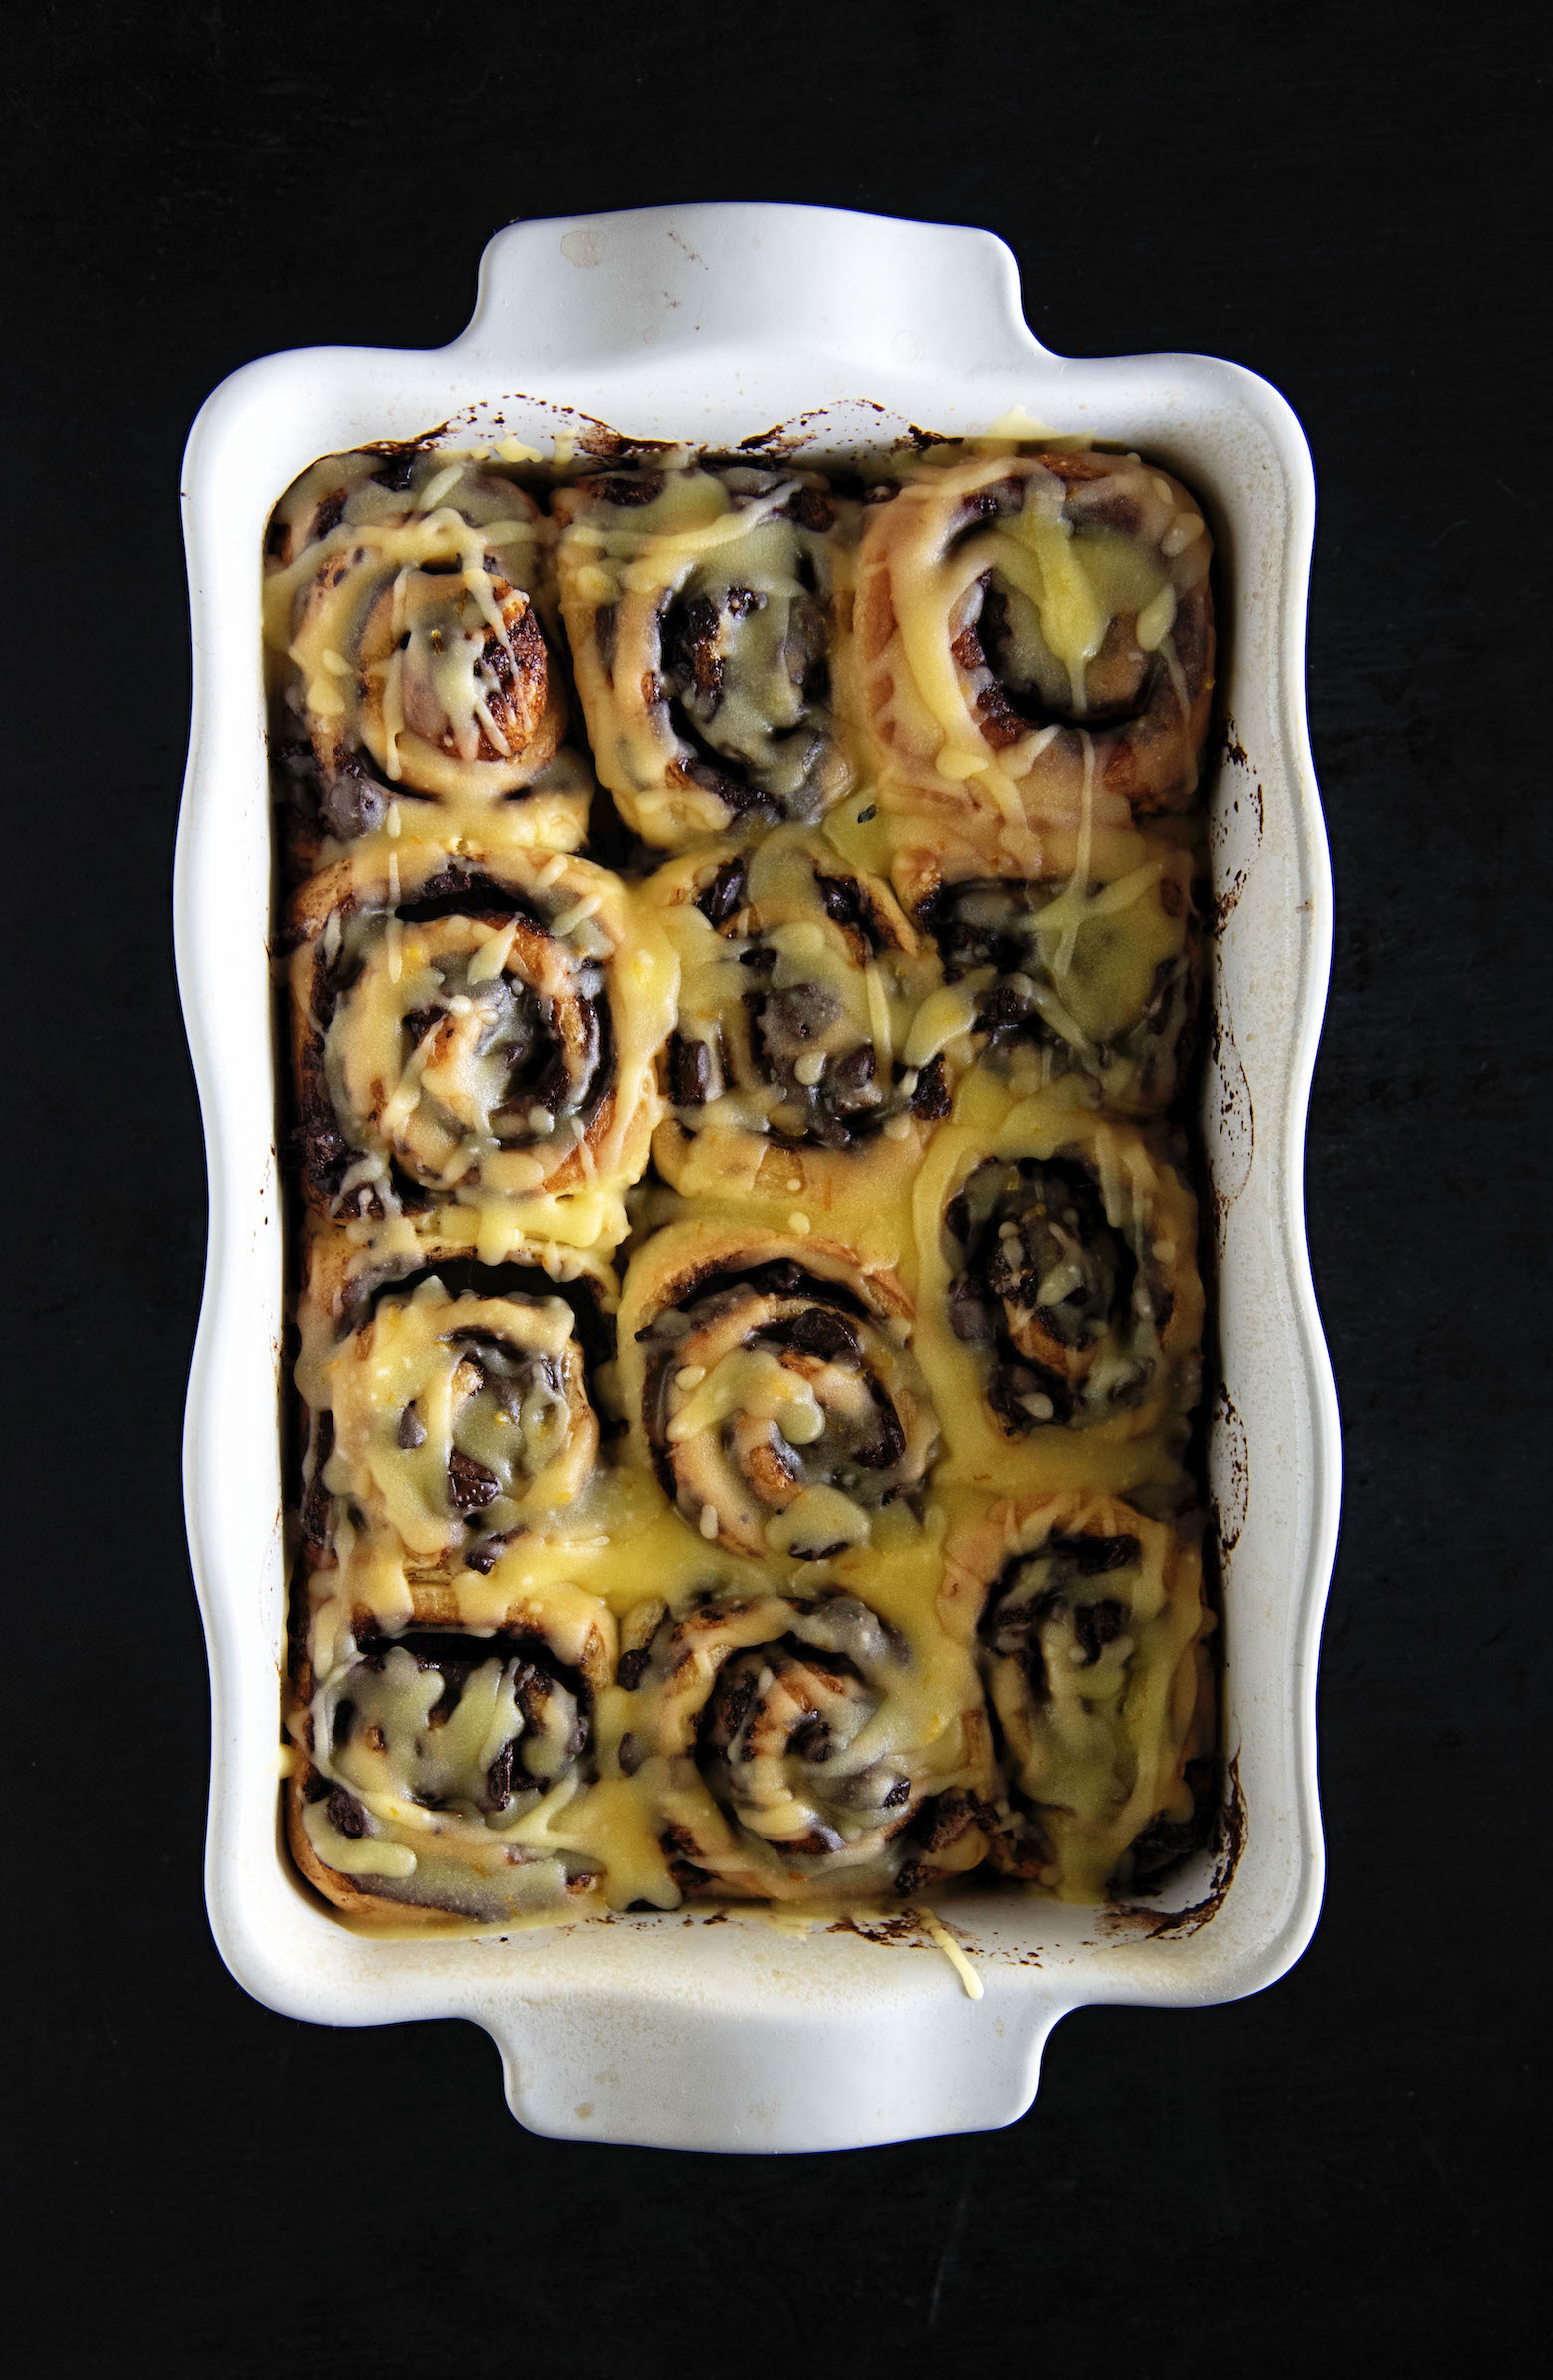 Chocolate Clementine Sweet Rolls